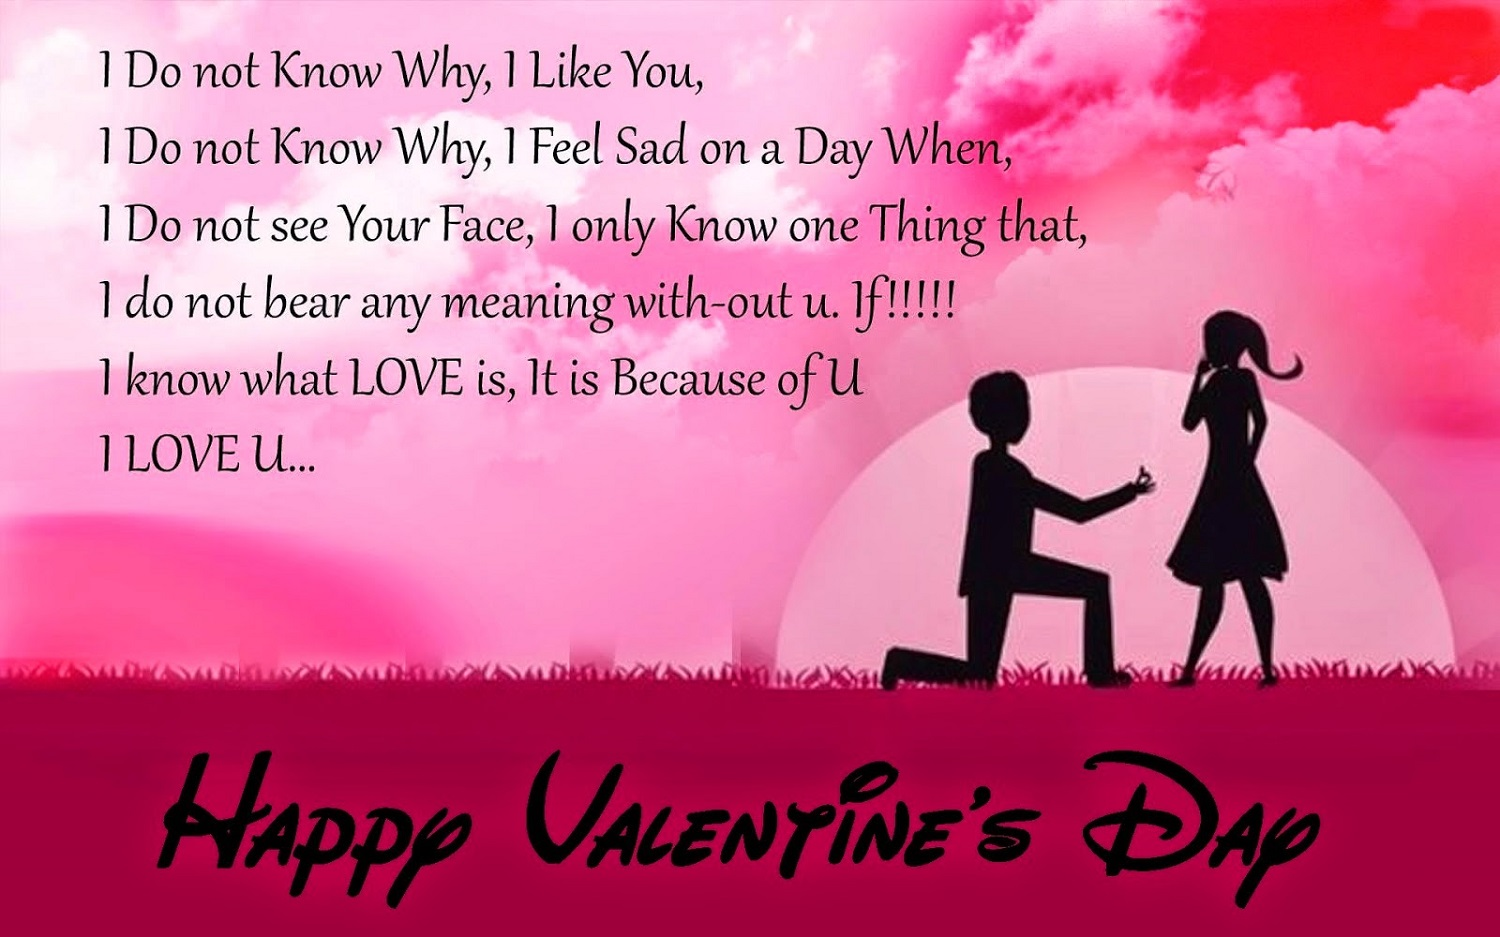 Valentines Quotes For Her Superhappy Valentines Day Quotes For Her  Happy Valentines Day